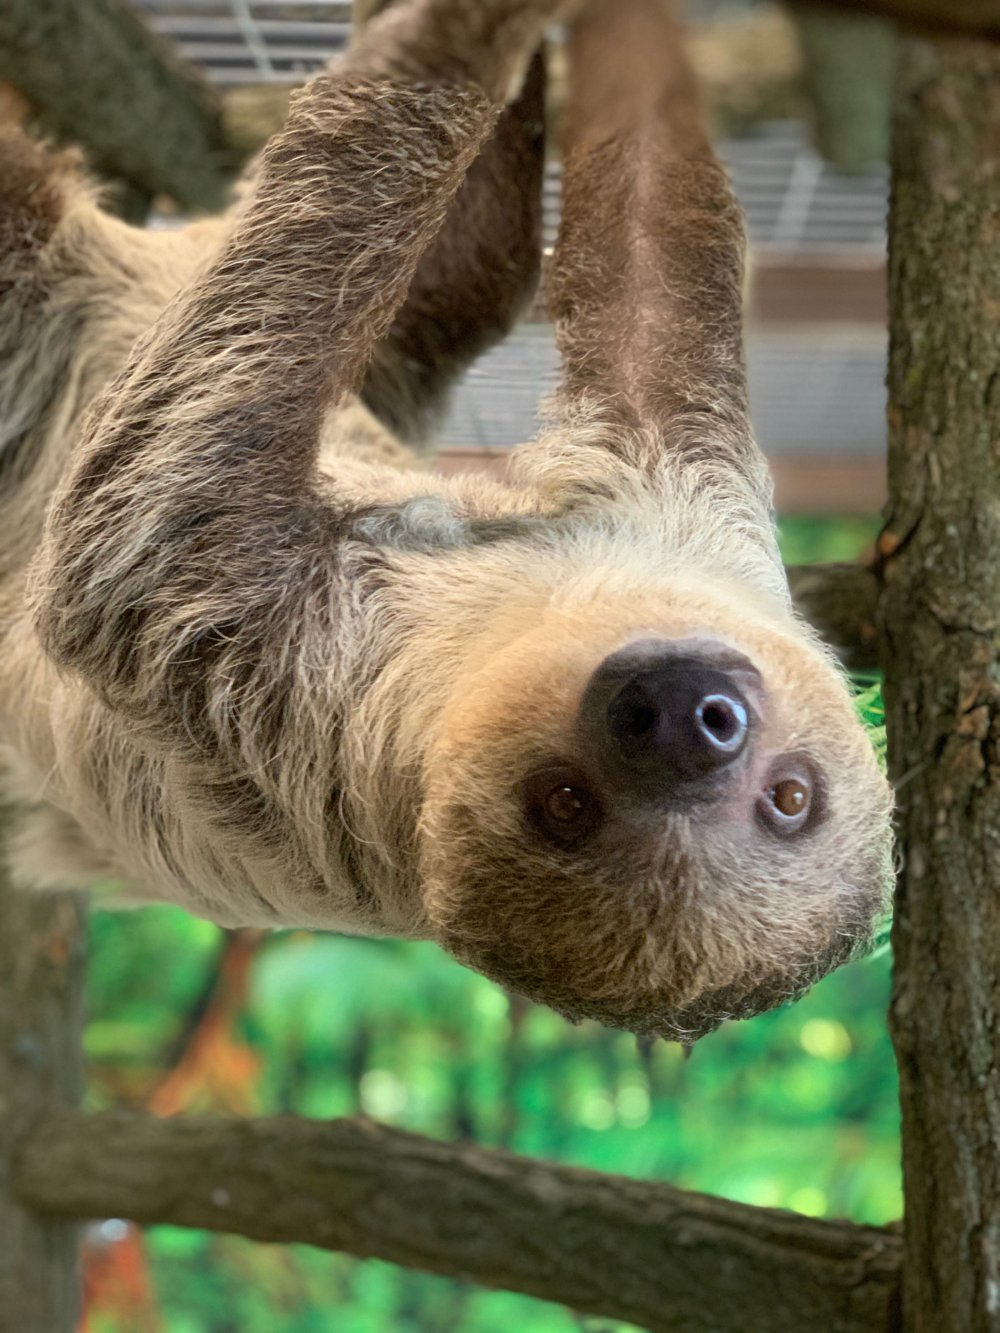 Sloths at The Lewis Adventure Farm and Zoo